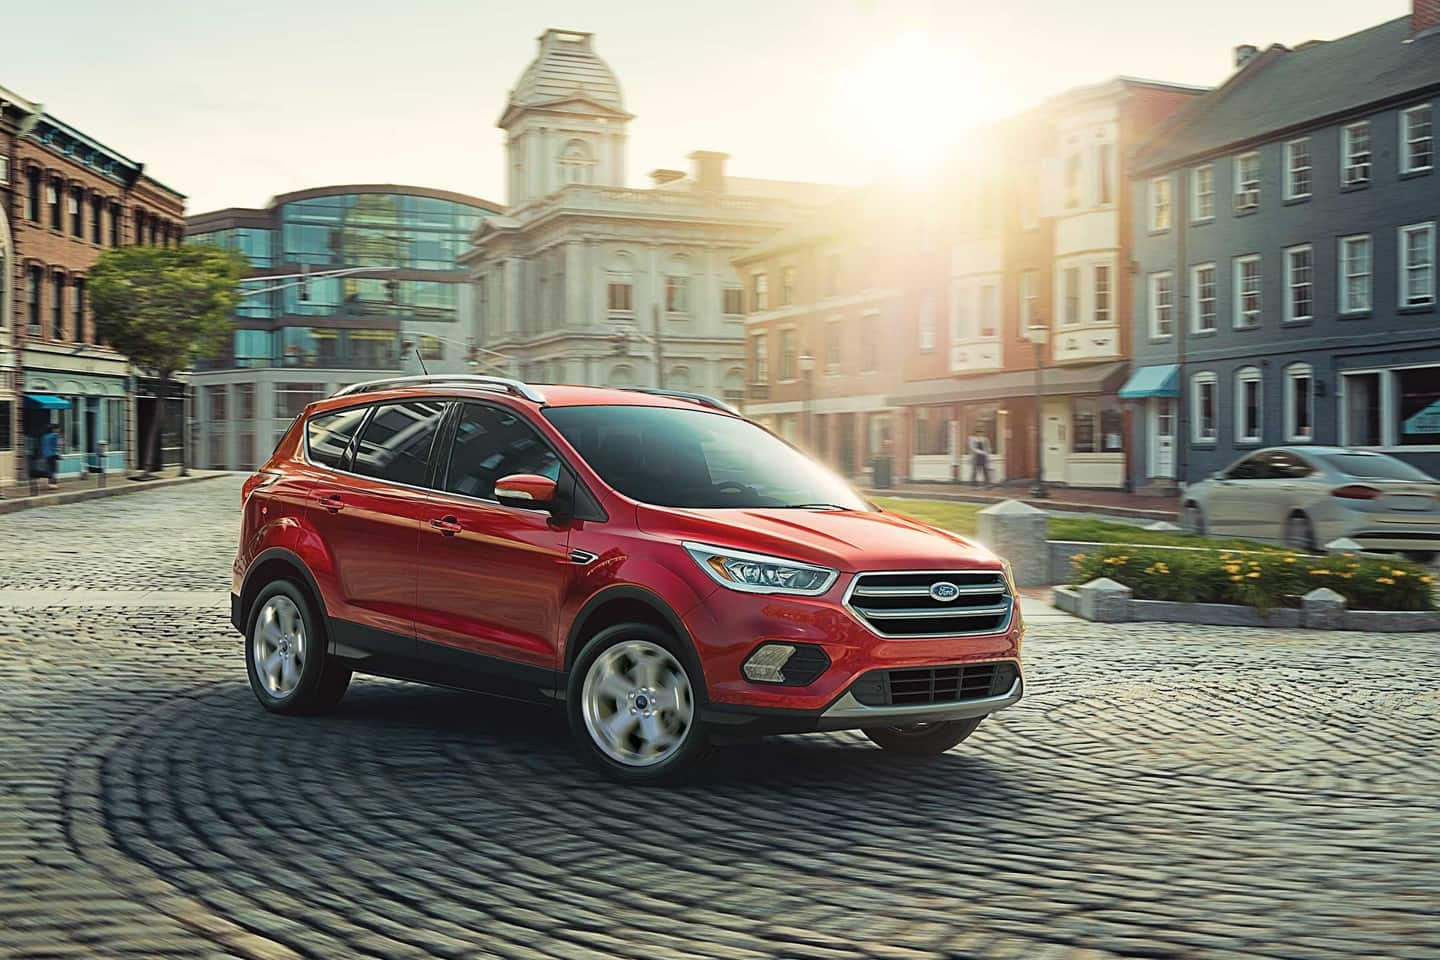 Used Ford Escape for Sale Dallas, TX